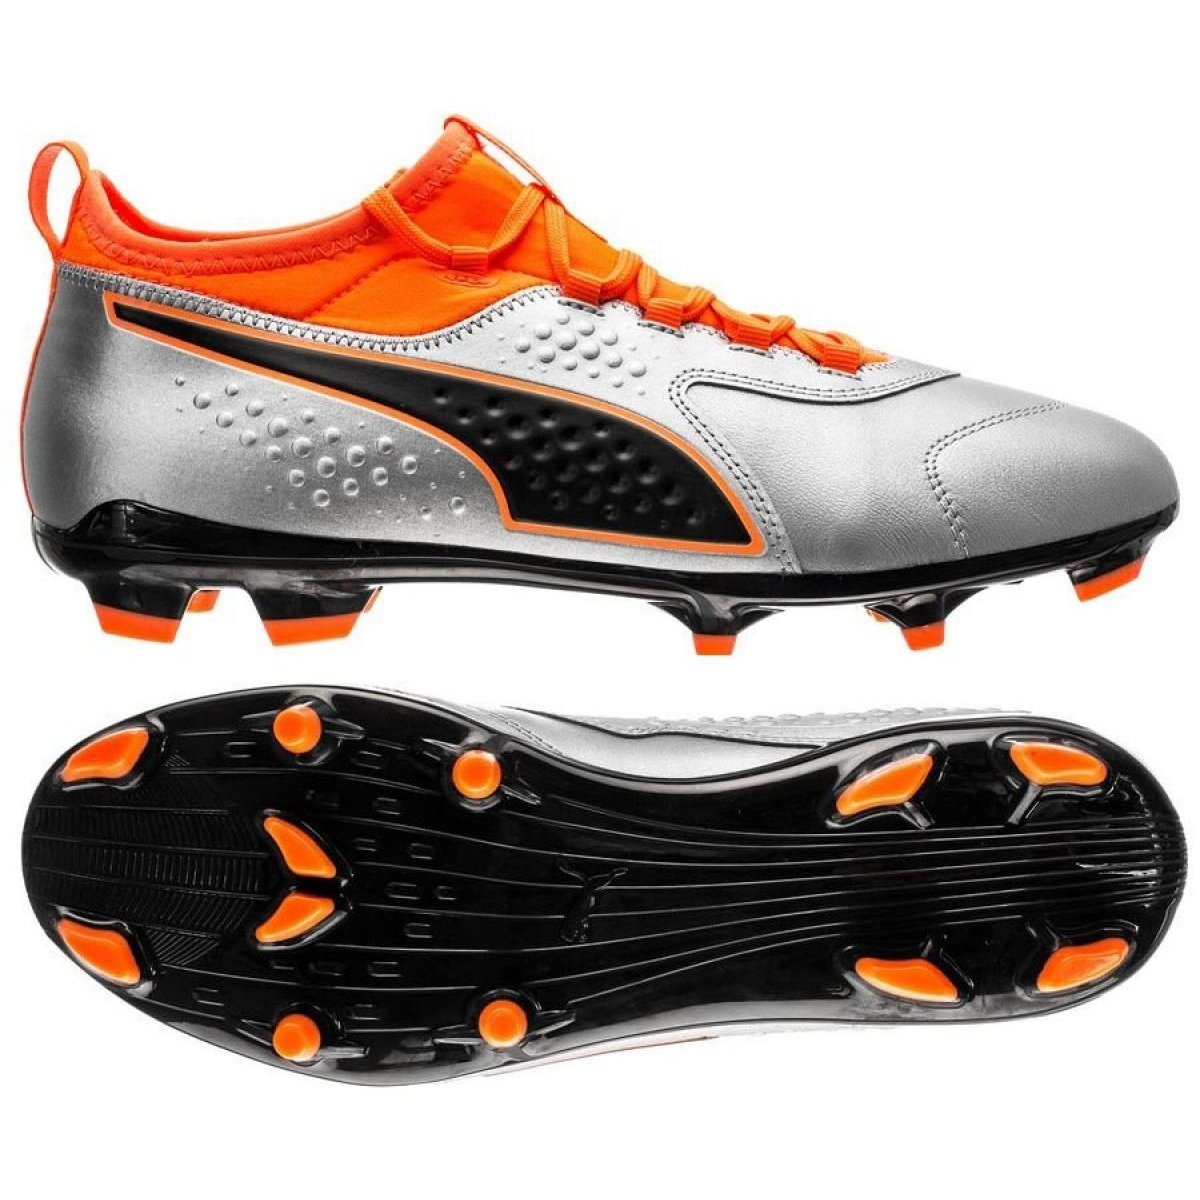 Details about Football boots Puma One 3 Lth Fg M 104743 01 orange multicolored